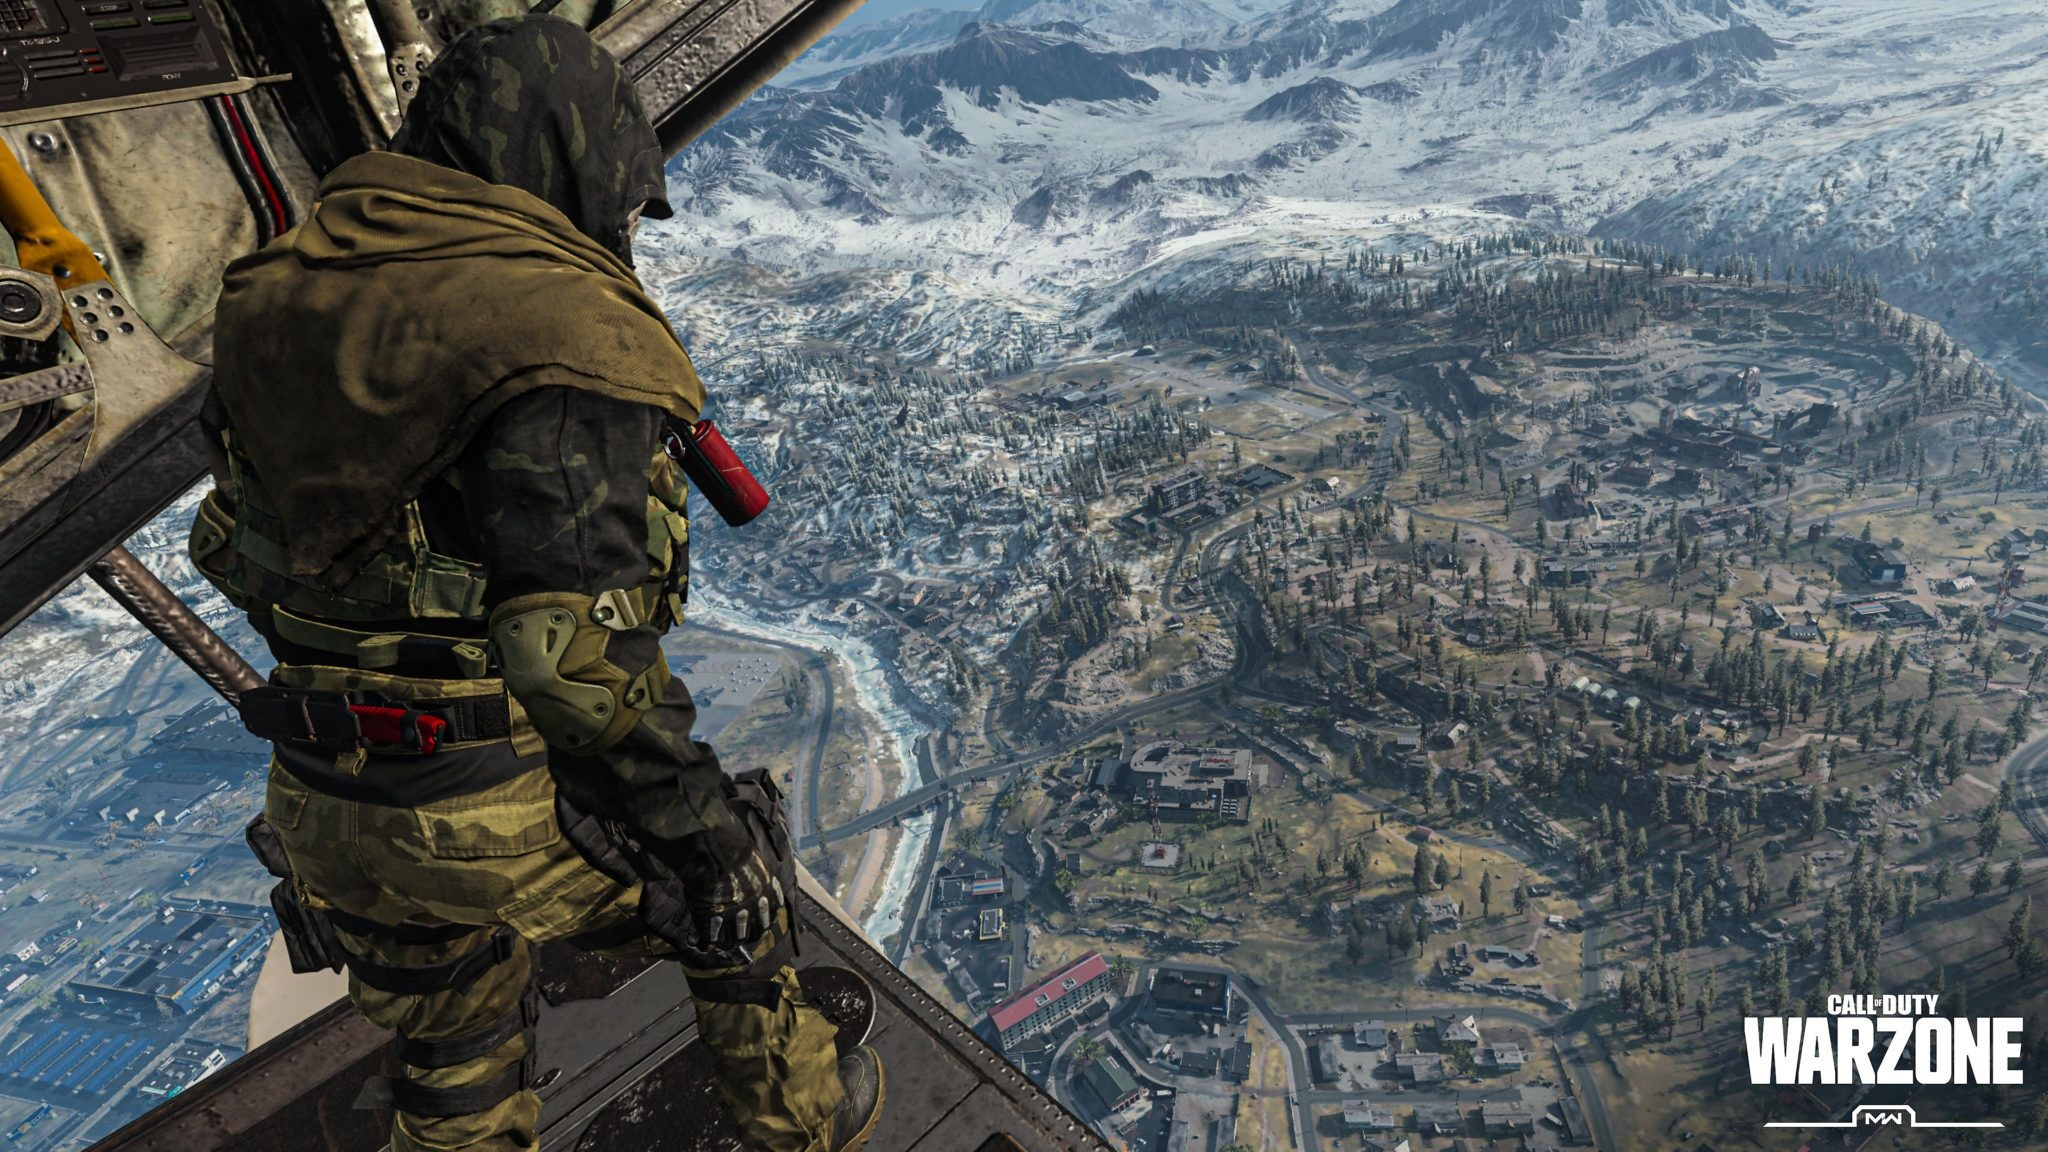 It looks like Call of Duty: Warzone is getting duos and four-person squads soon screenshot